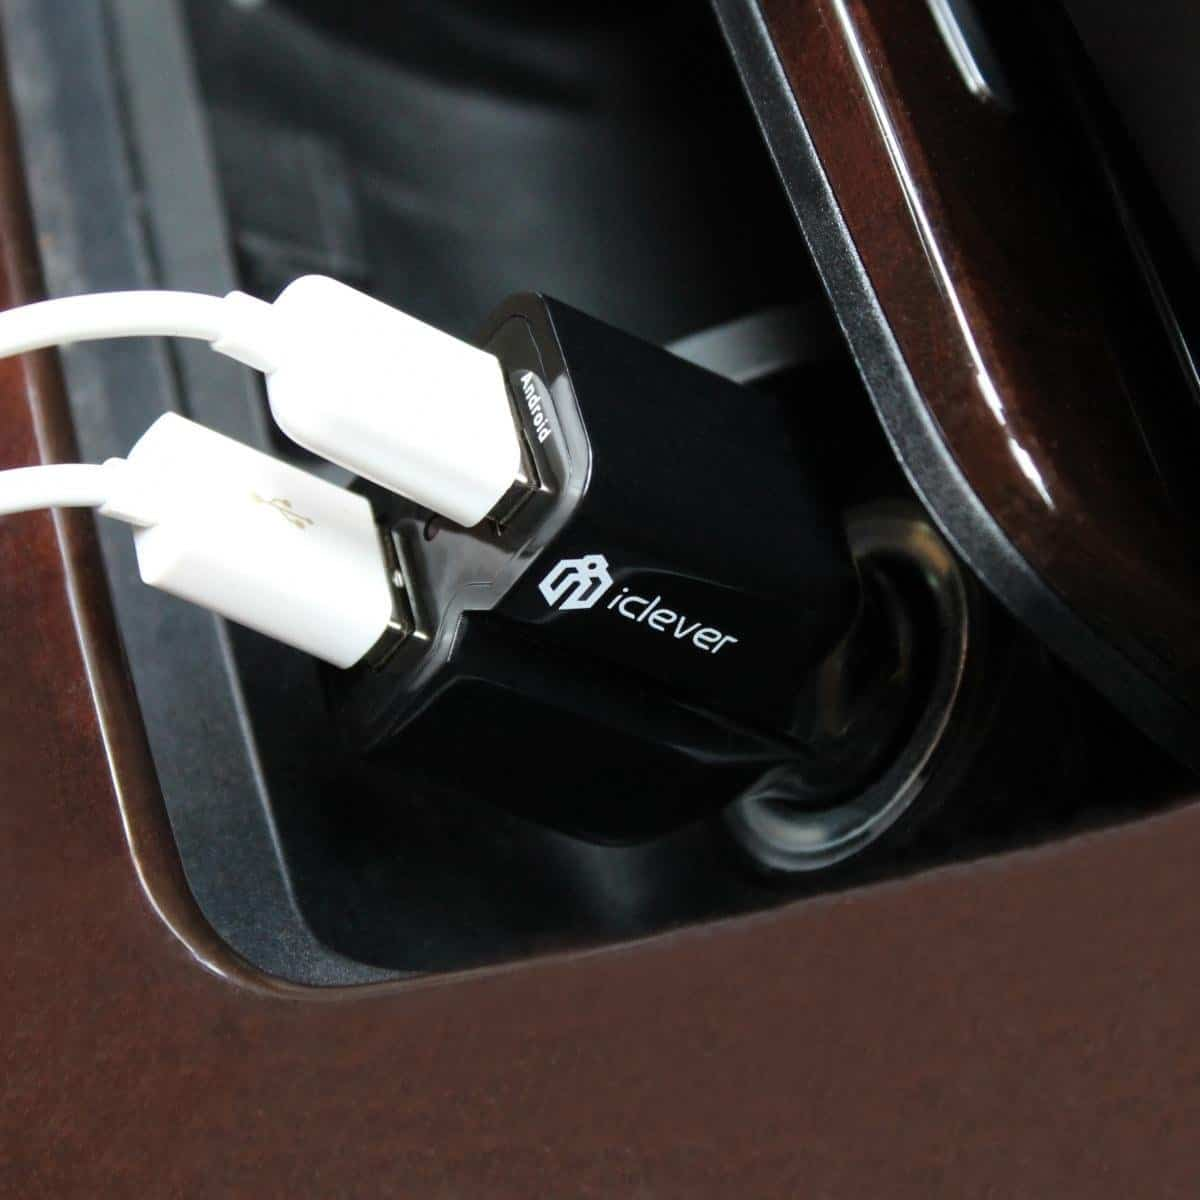 iClever car charger 05